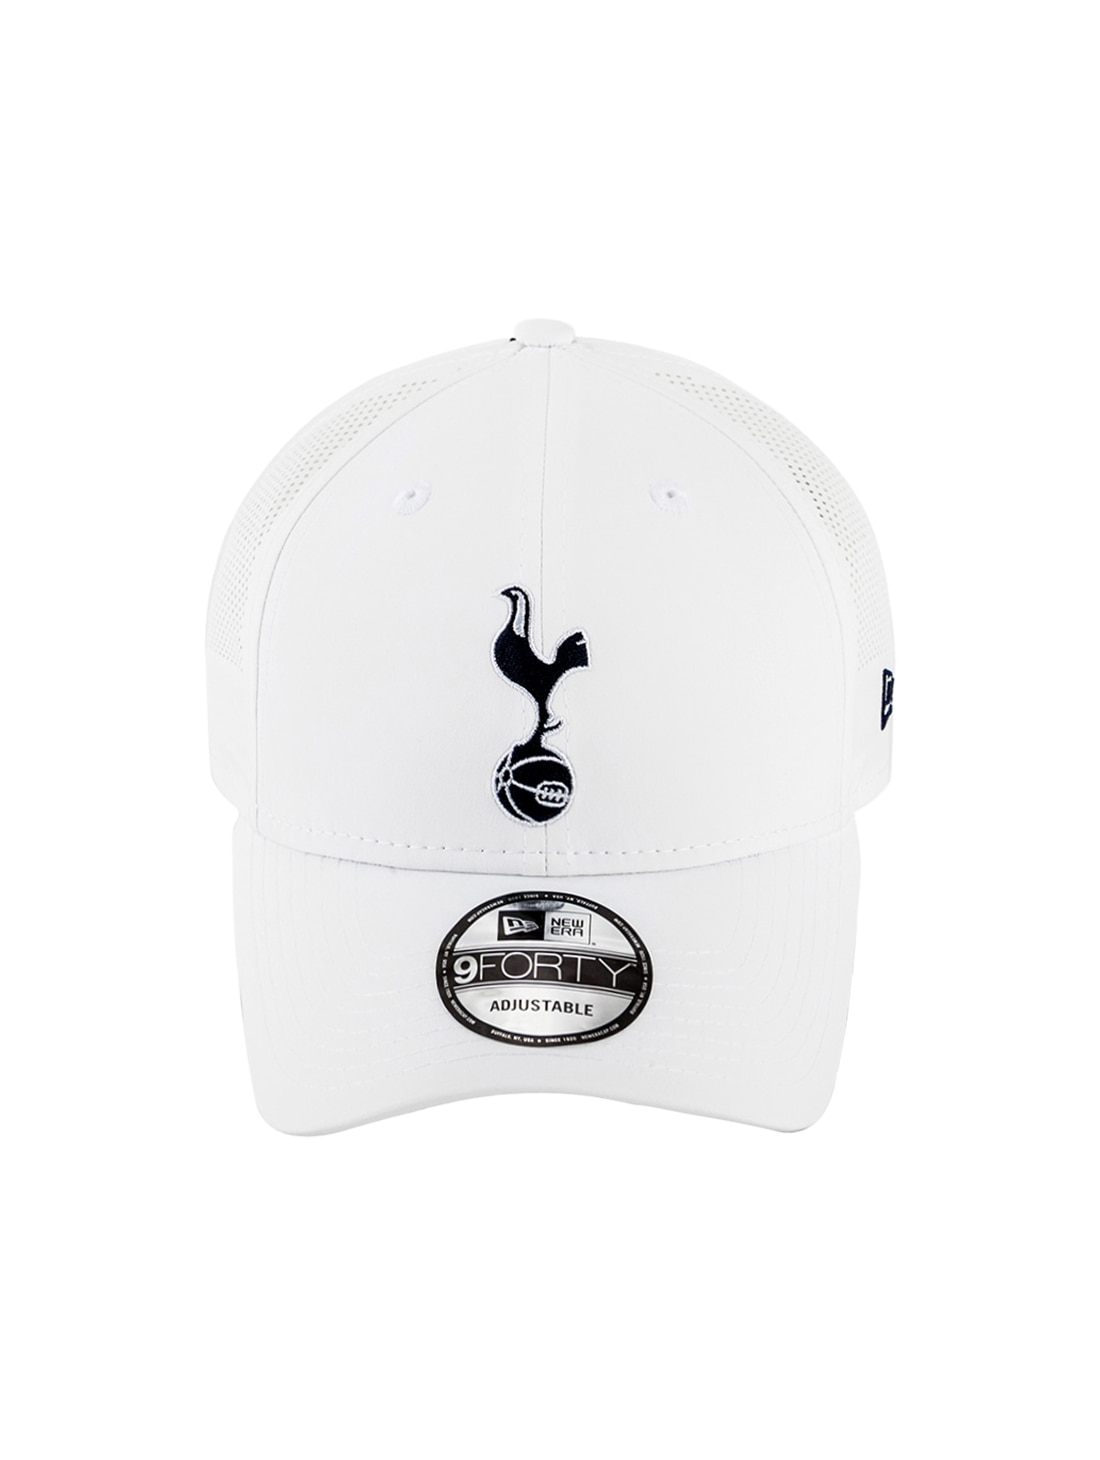 GOALSTUDIO (Sold Out) TOTTENHAM PERFORATED MESH BALL CAP - WHITE